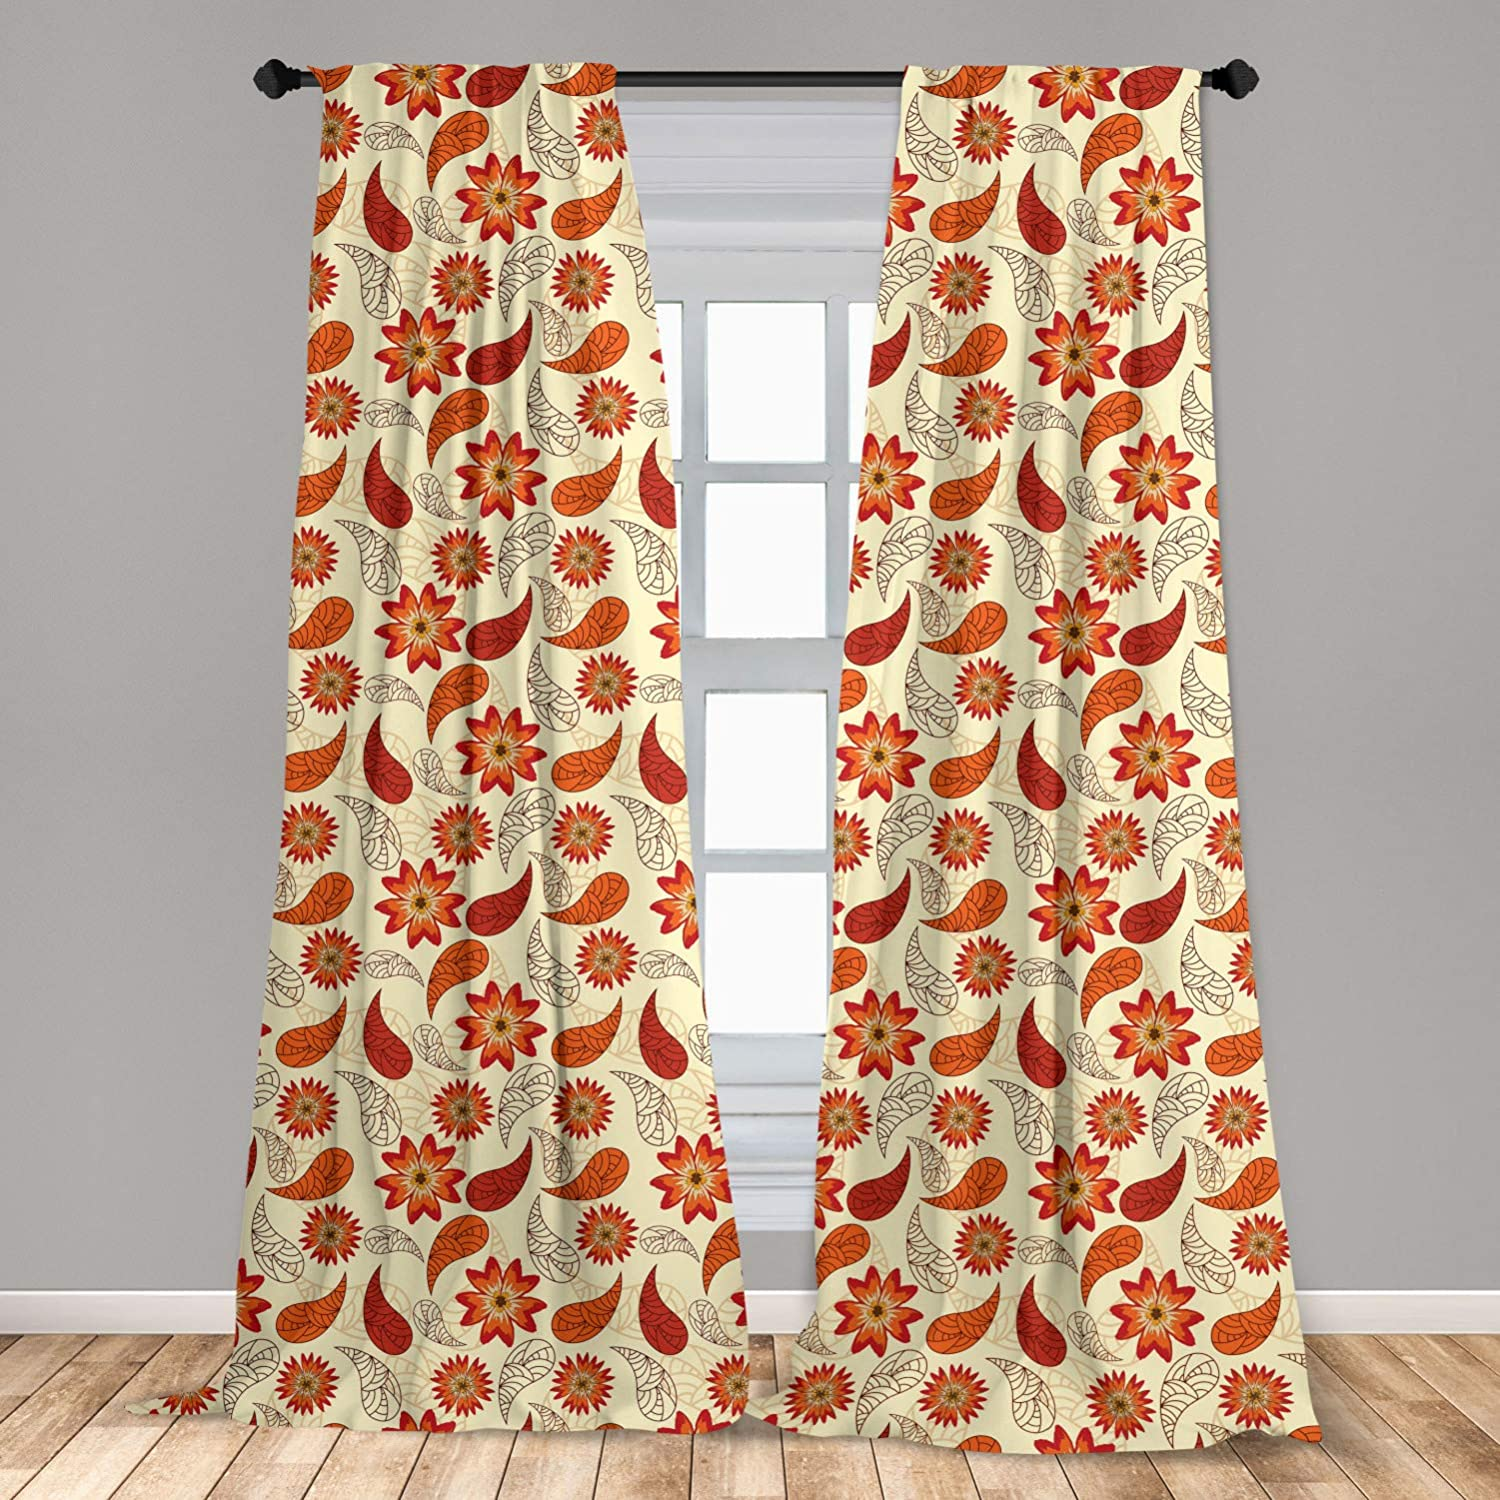 Ambesonne Orange 2 Panel Curtain Set, Red Poppy Flowers in Retro Style and Leaves Flourish Paisley Pattern, Lightweight Window Treatment Living Room Bedroom Decor, 56